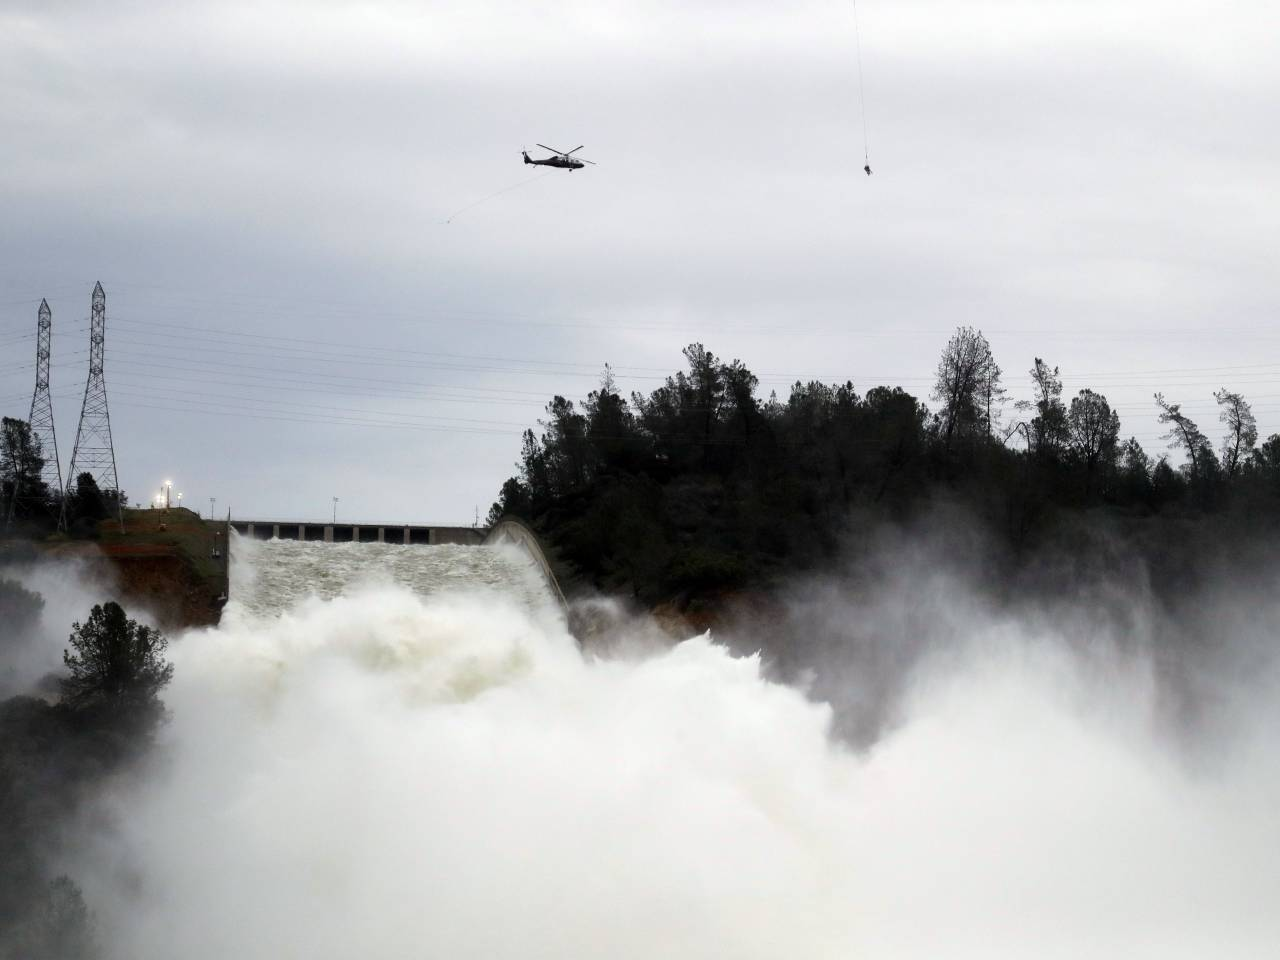 California rain: Flash flooding possible in SoCal as officials watch Oroville dam